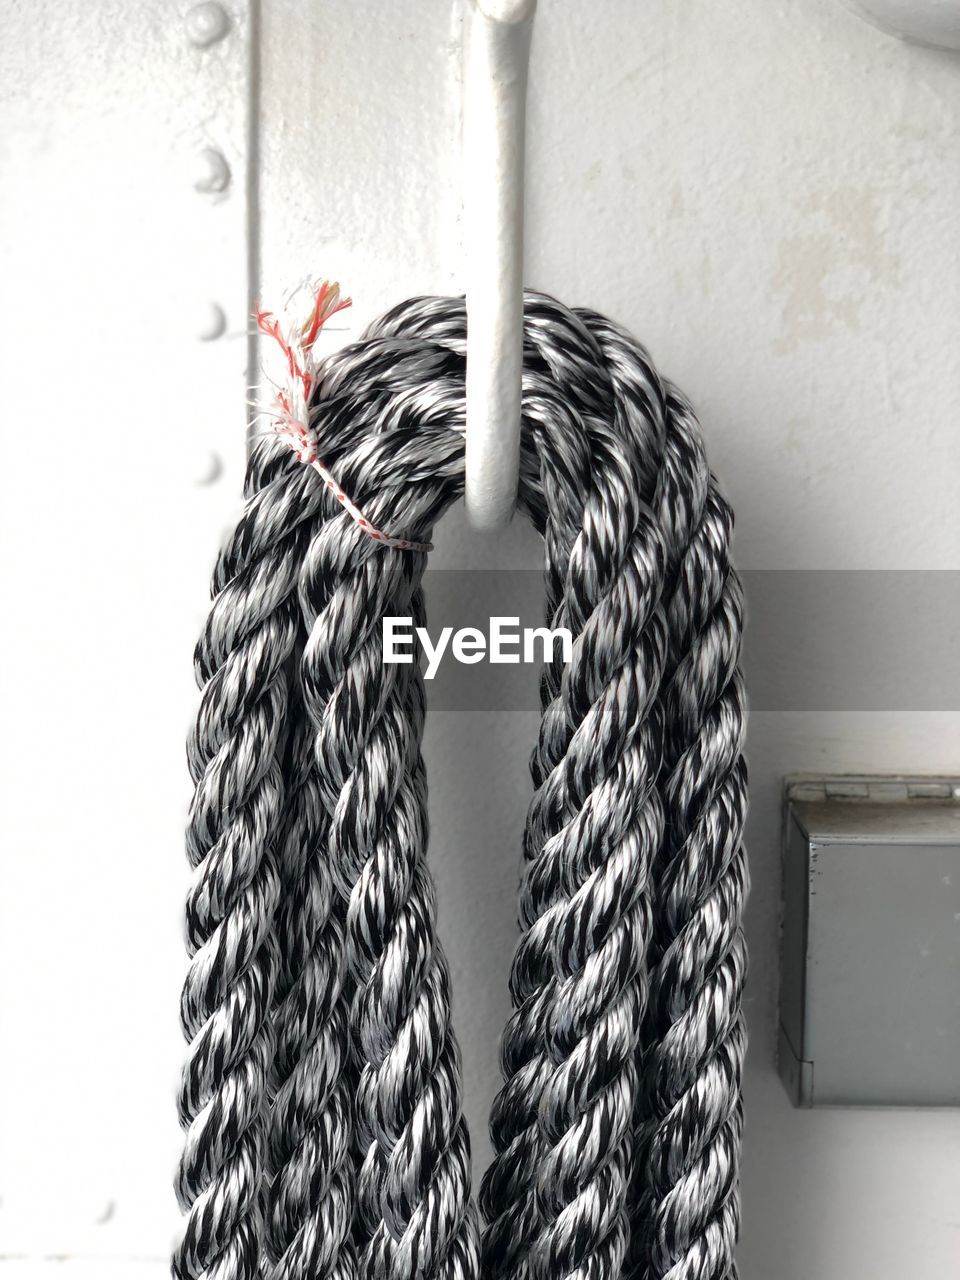 indoors, close-up, no people, wall - building feature, pattern, focus on foreground, rope, white color, day, hanging, still life, metal, strength, tied up, animal themes, string, one animal, nature, textile